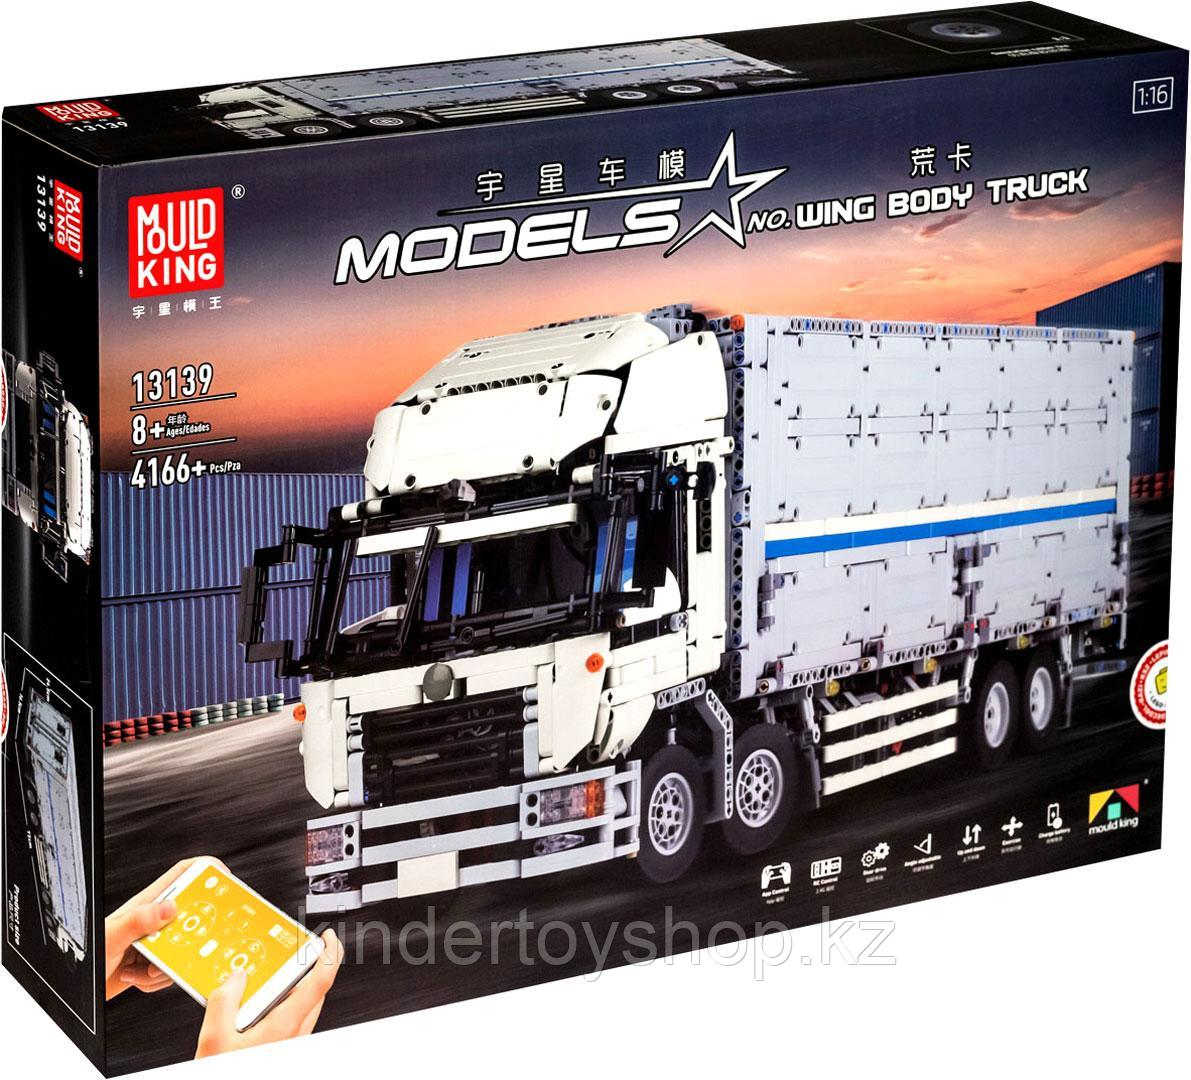 Аналог лего Lego Technic MOC-1389  LEPIN 23008 Mould King 13139  Wing Body Truck грузовик фура